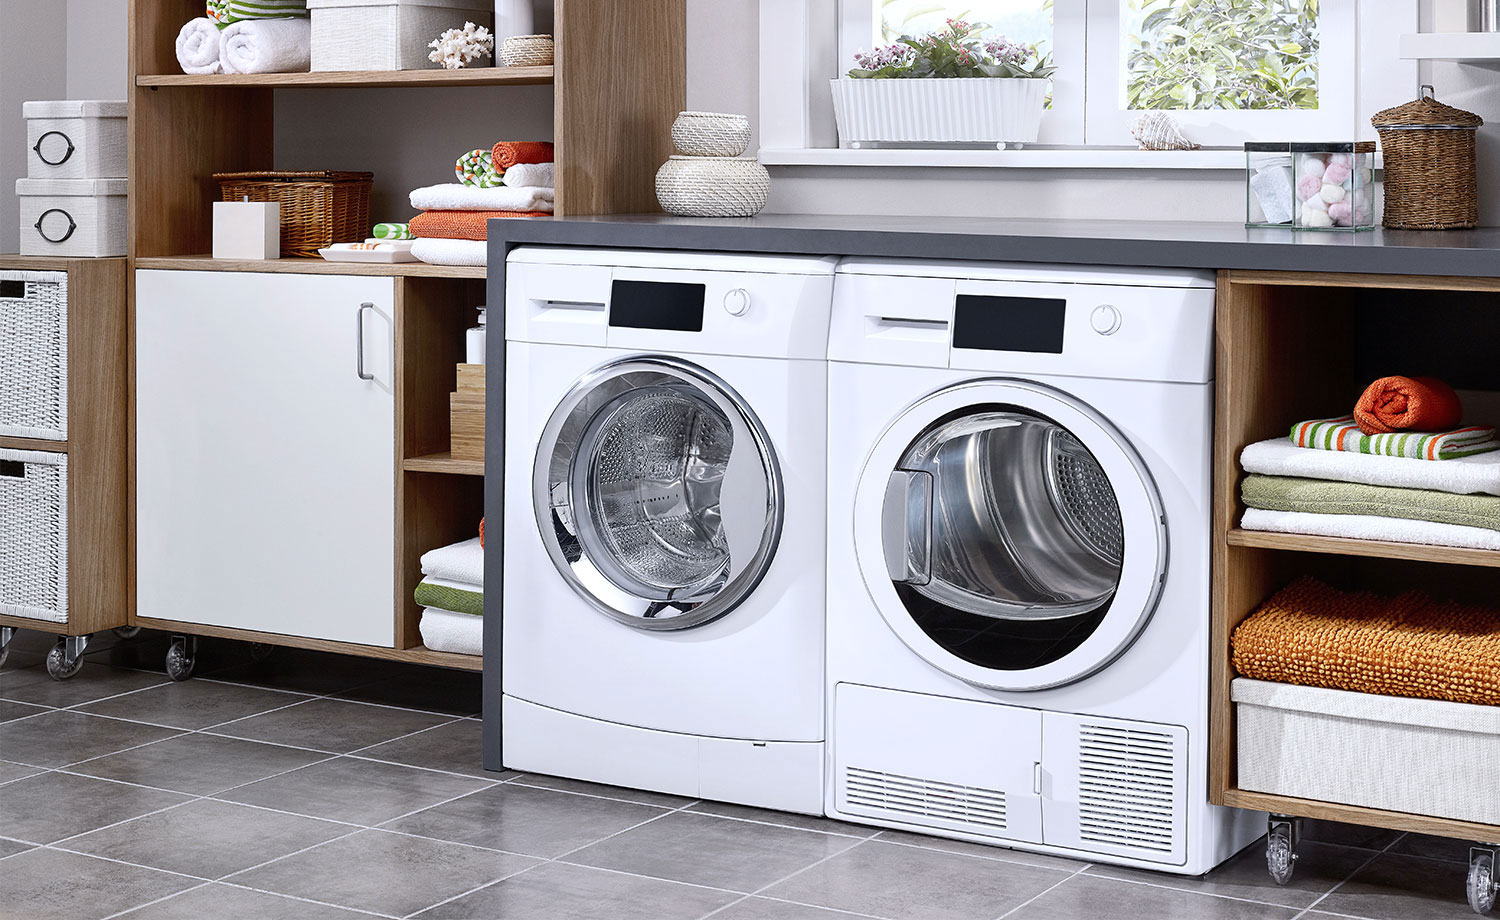 Household washer and dryer set.